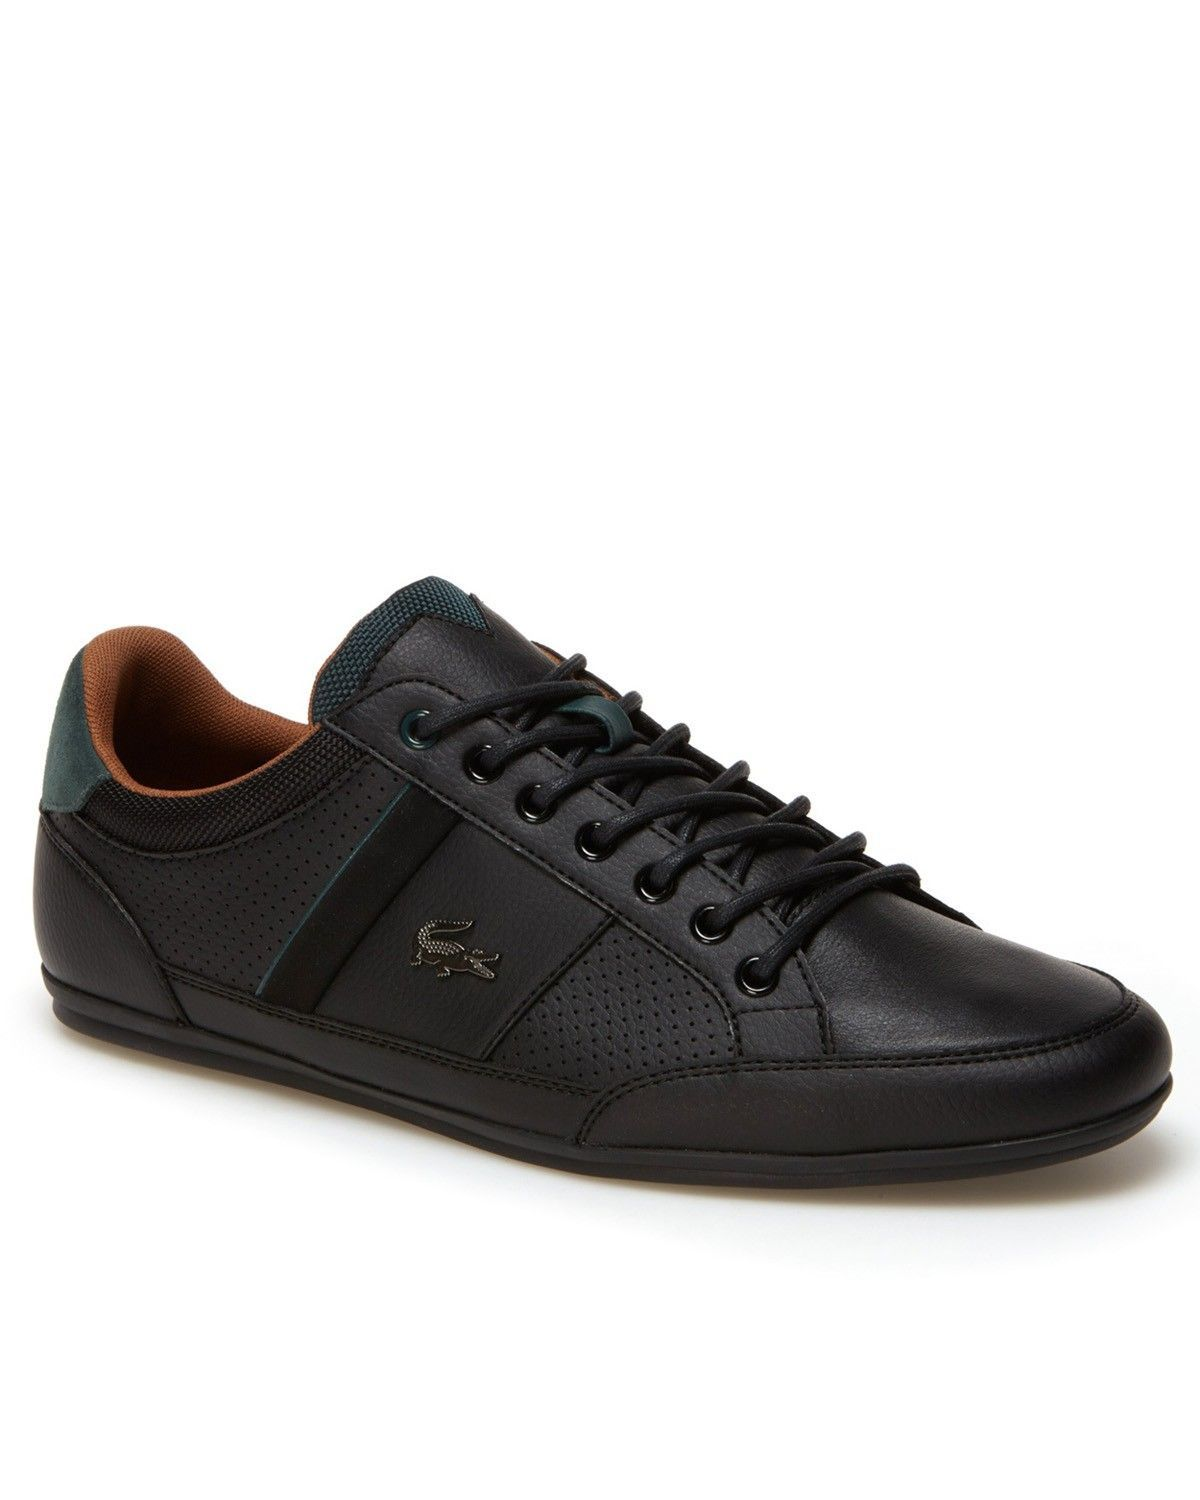 df08bb387e1d Black Lacoste Chaymon Trainers in 2019